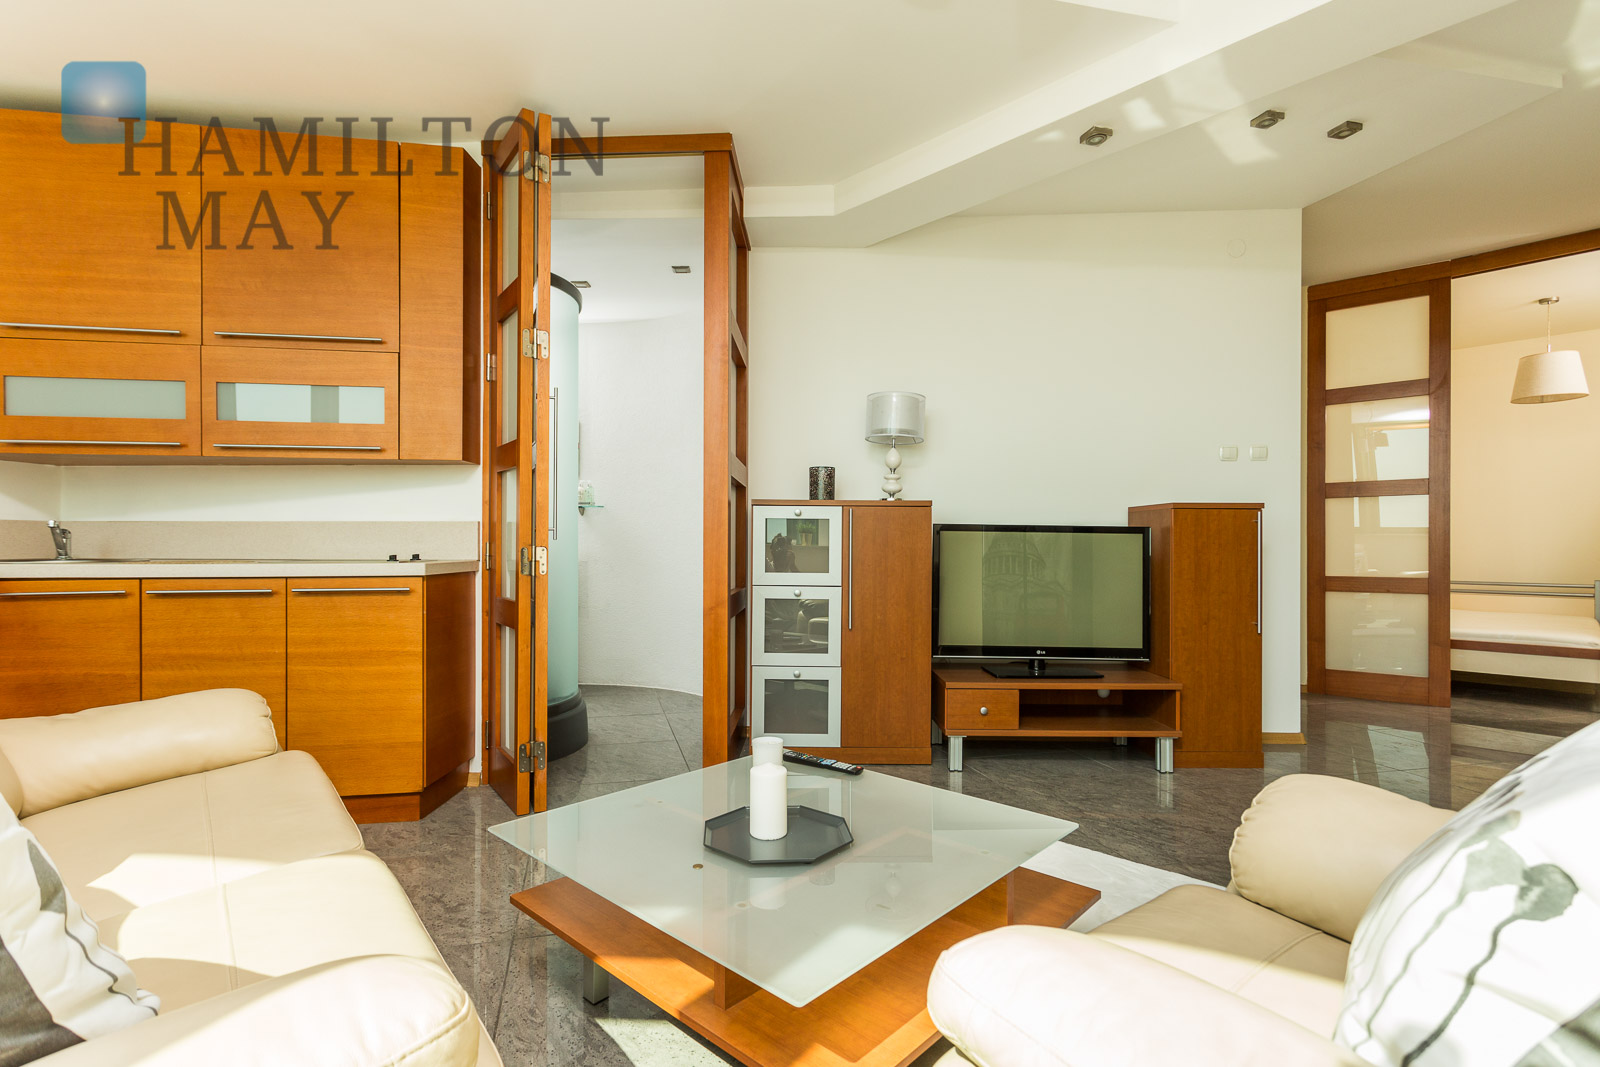 A suite of two fully equipped apartments - ideal as an investment Warsaw for sale